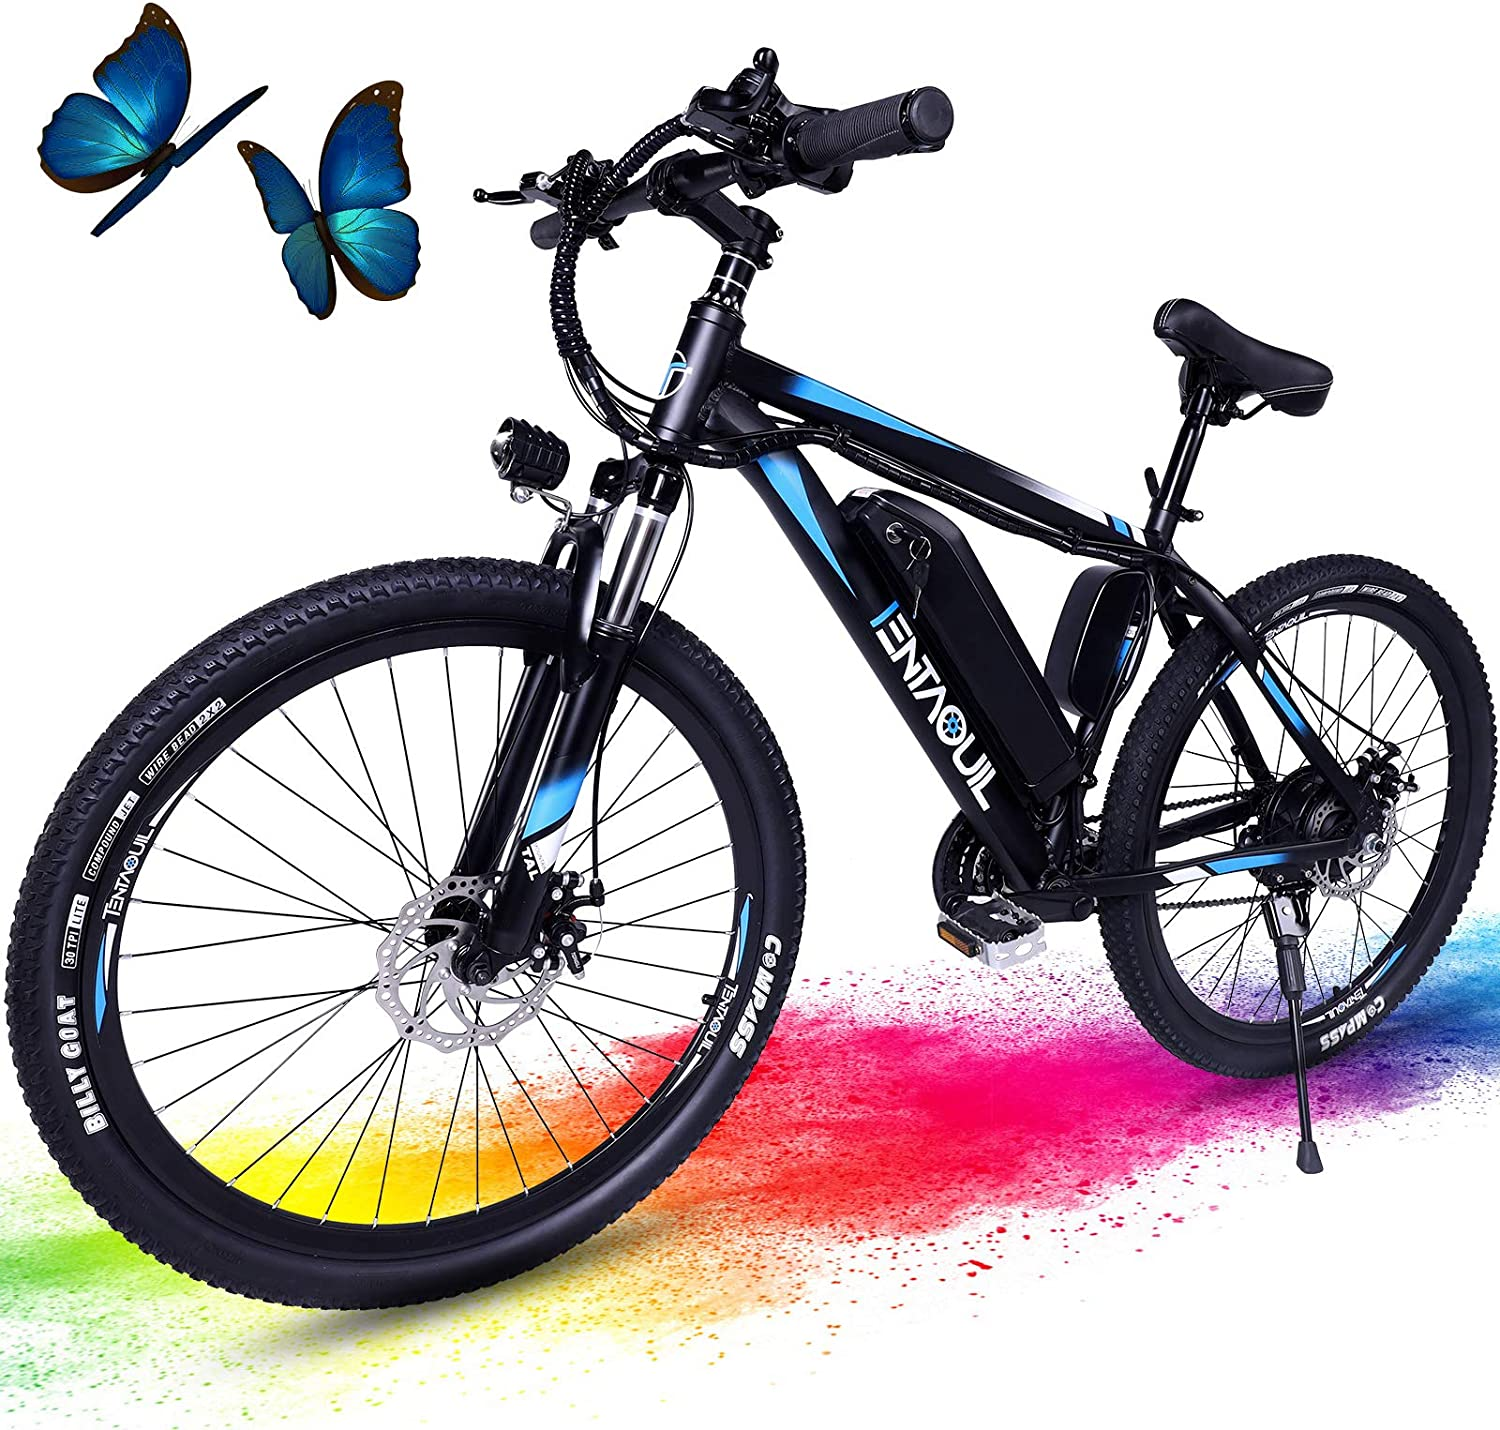 3Y Manufacturer regenerated product Electric Bike 26'' Bicycle Max 45% OFF Ebike w 20MPH for Adults